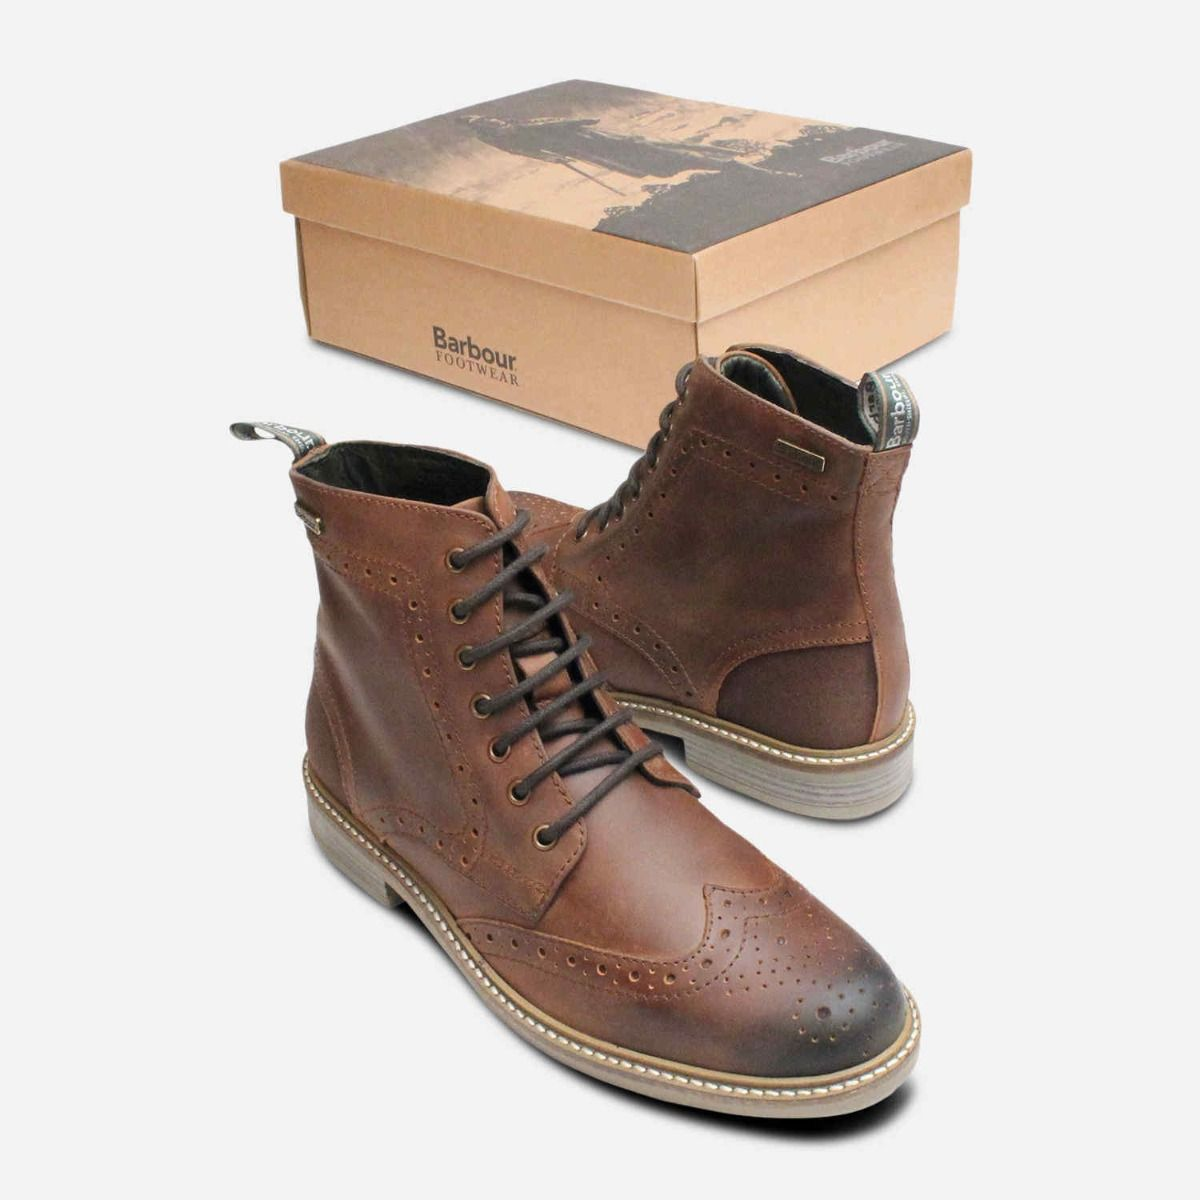 54acd6dc6e3 Country Brogues in Waxy Brown by Barbour Belsay